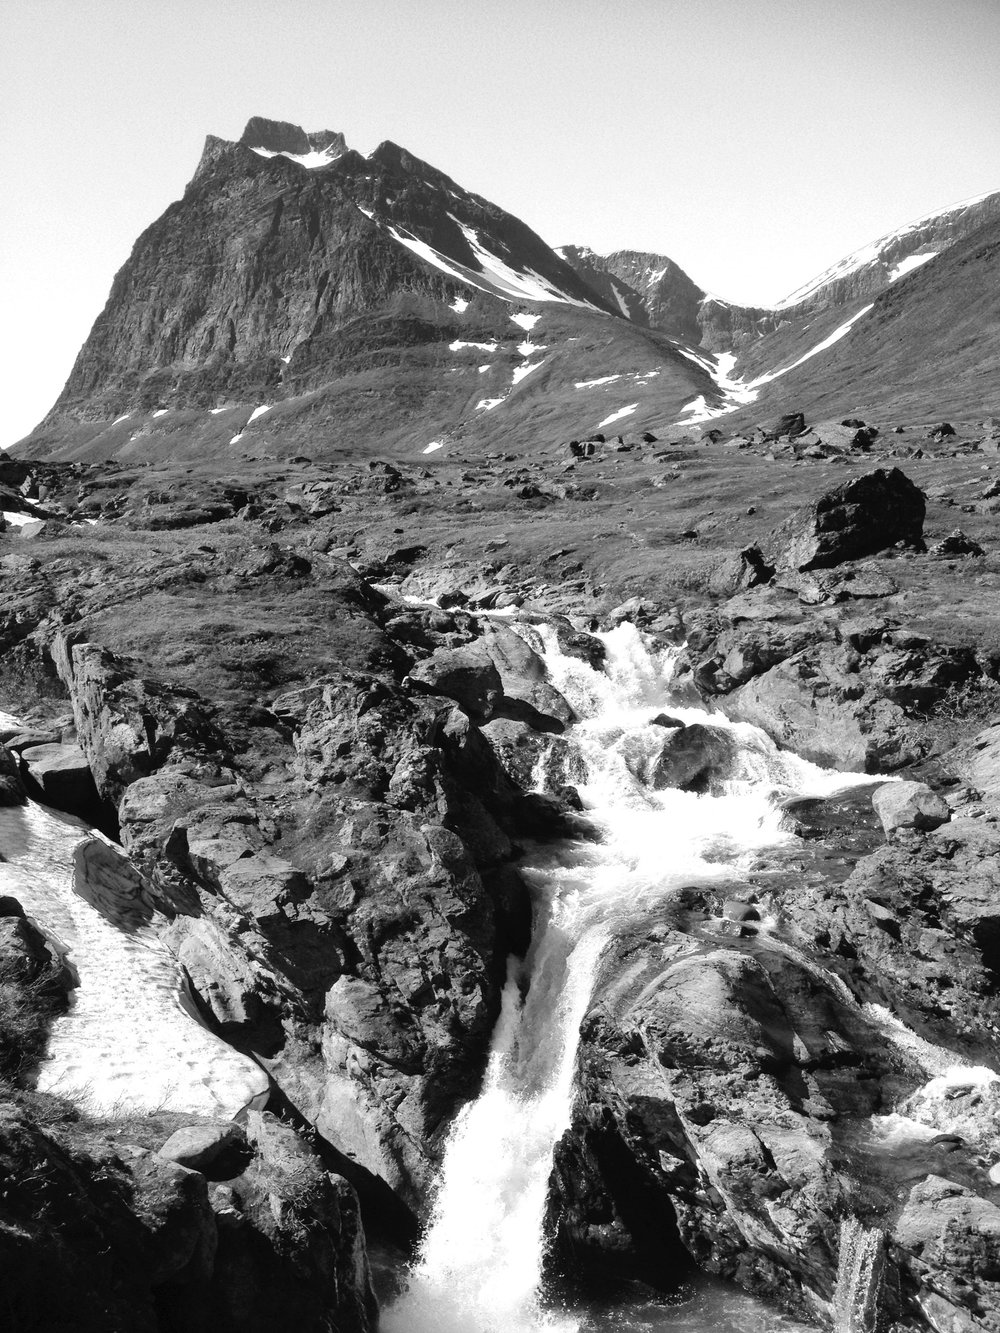 Kebnekaise Moutntain in northern Sweden.